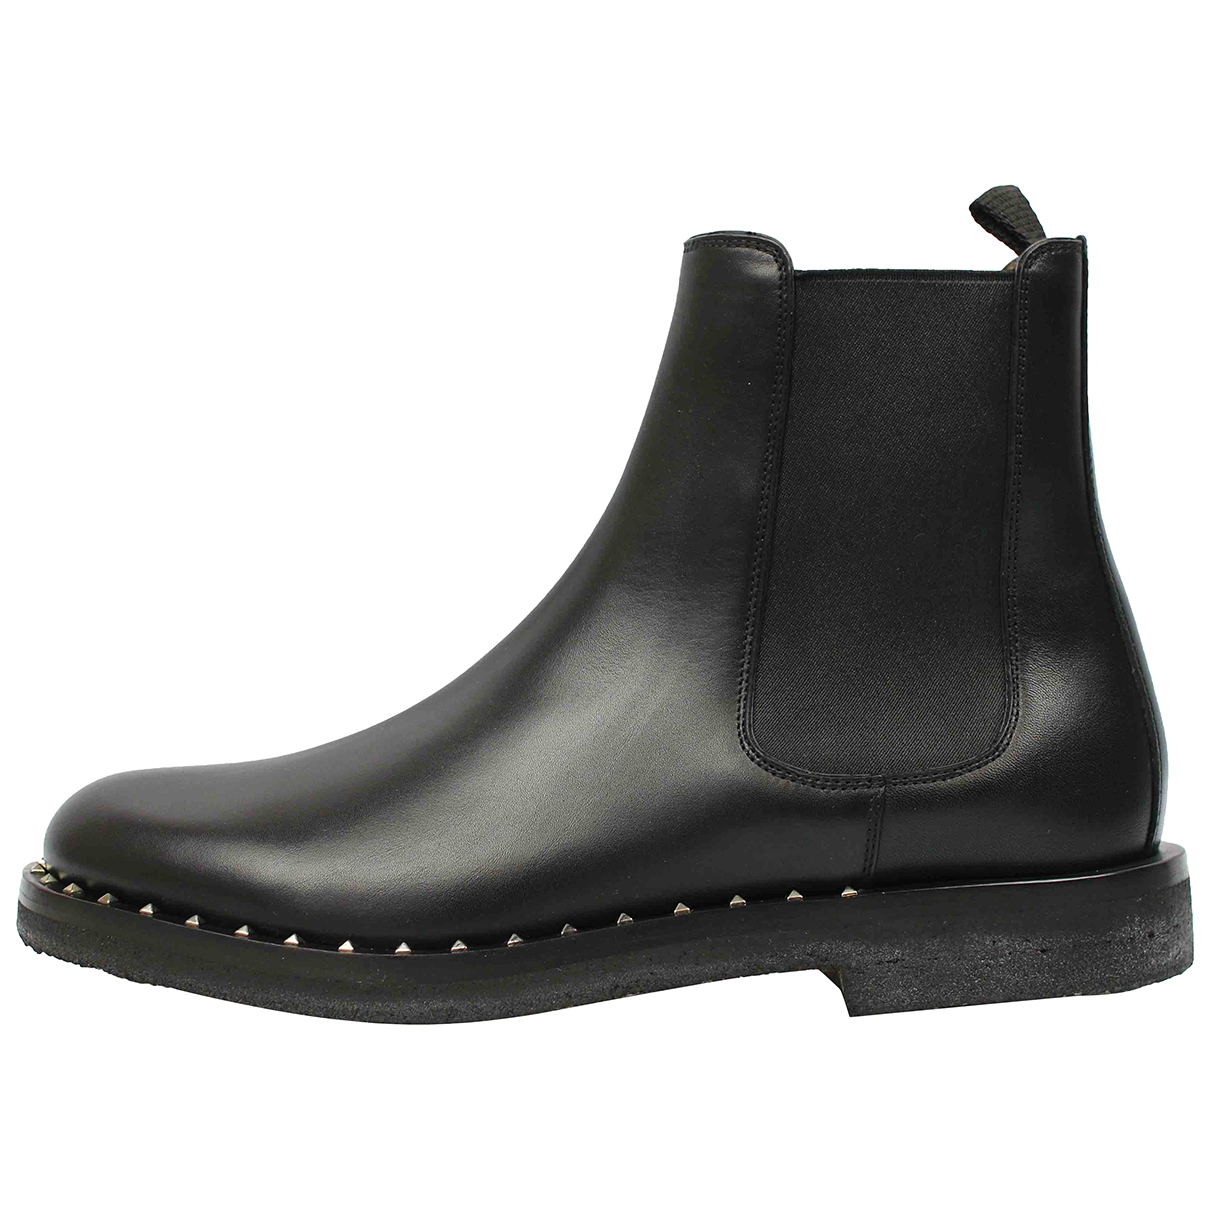 Valentino Garavani N Black Leather Boots for Men 42 EU